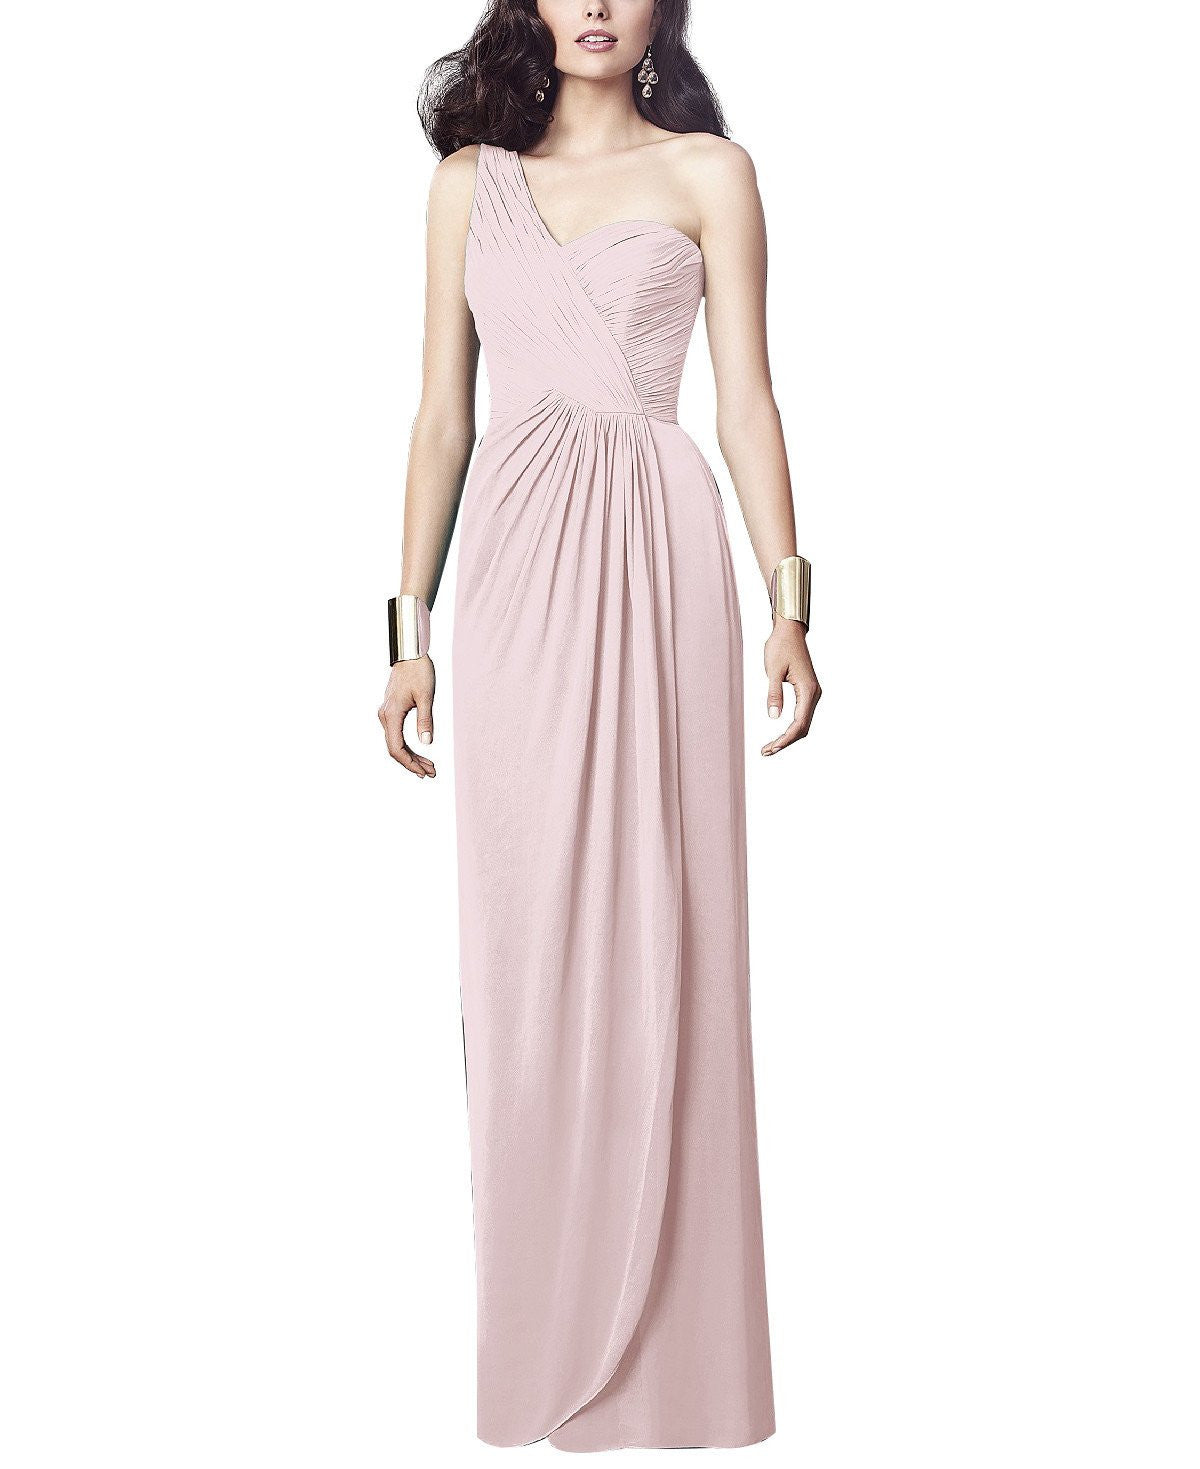 Dessy collection style 2905 quickship bridesmaid dress brideside dessy collection style 2905 quickship ombrellifo Gallery